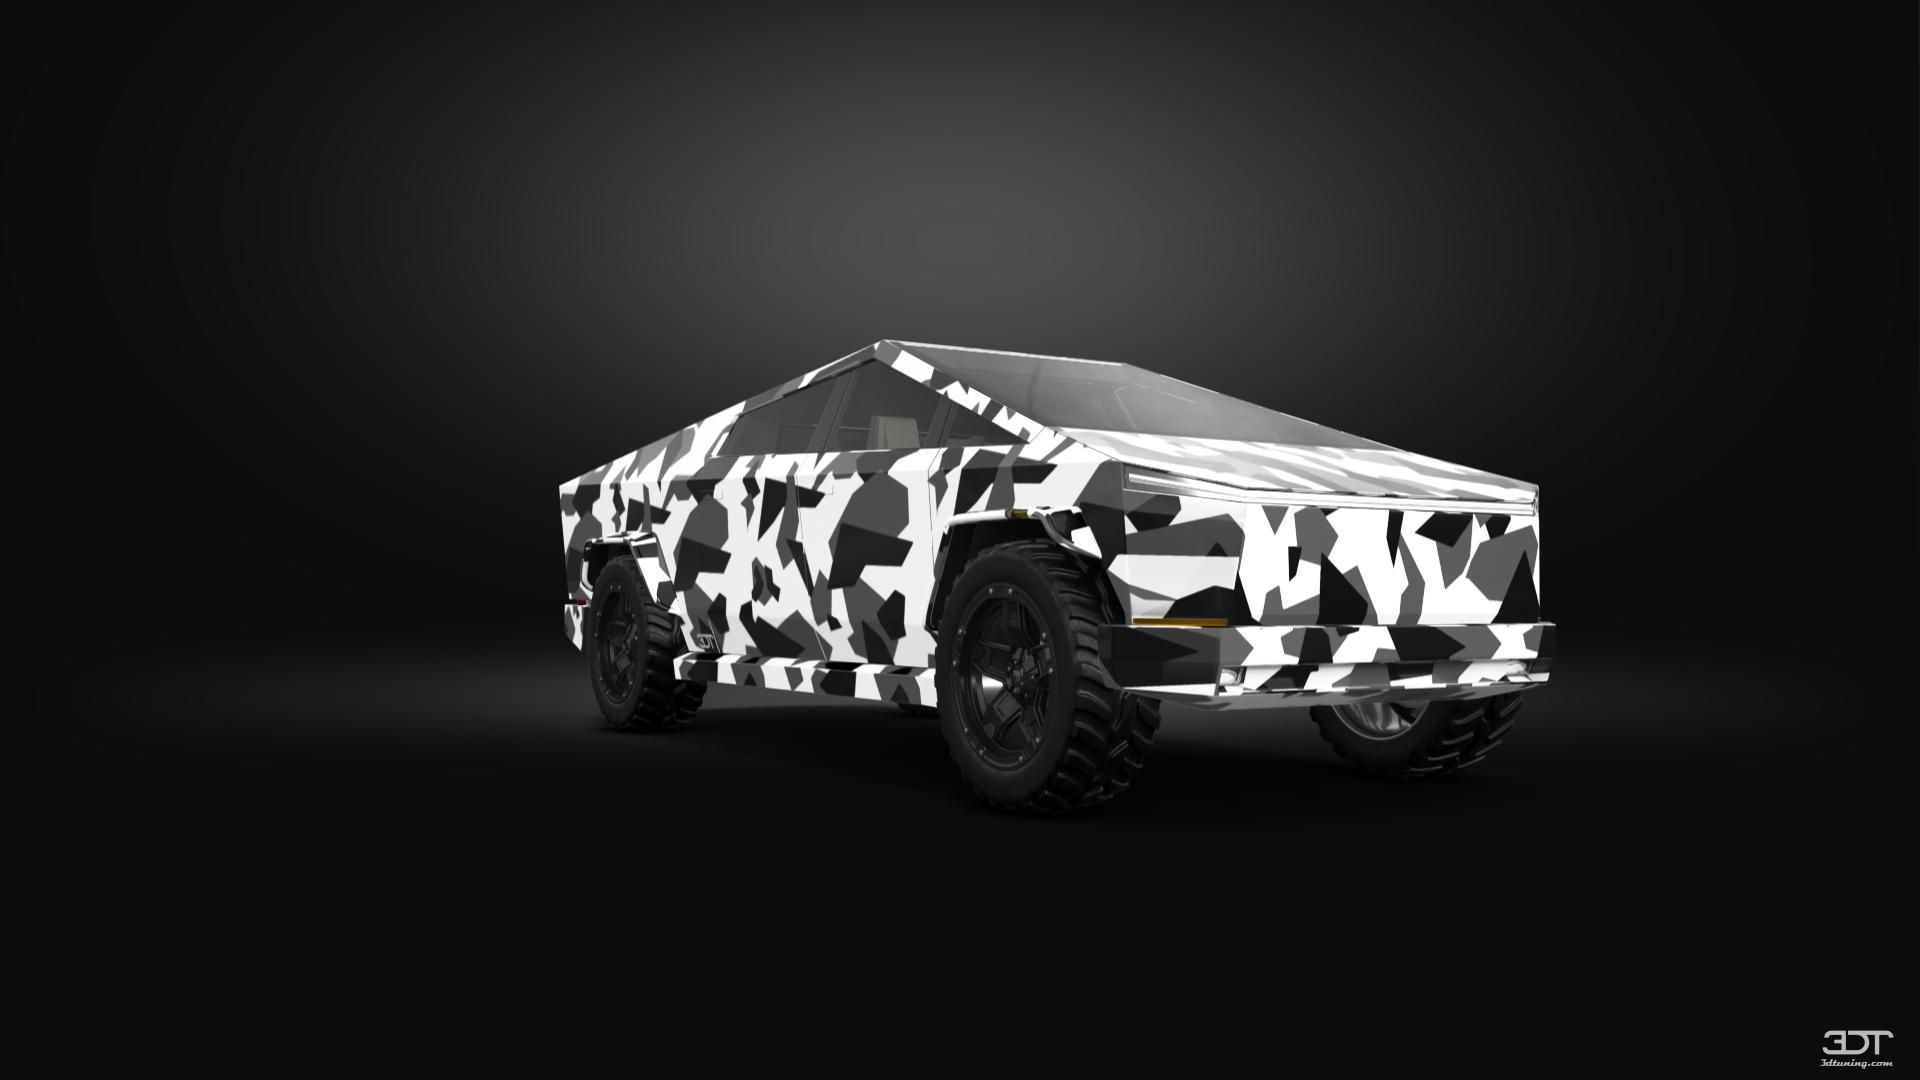 Checkout my tuning Tesla Cybertruck 2021 at 3DTuning